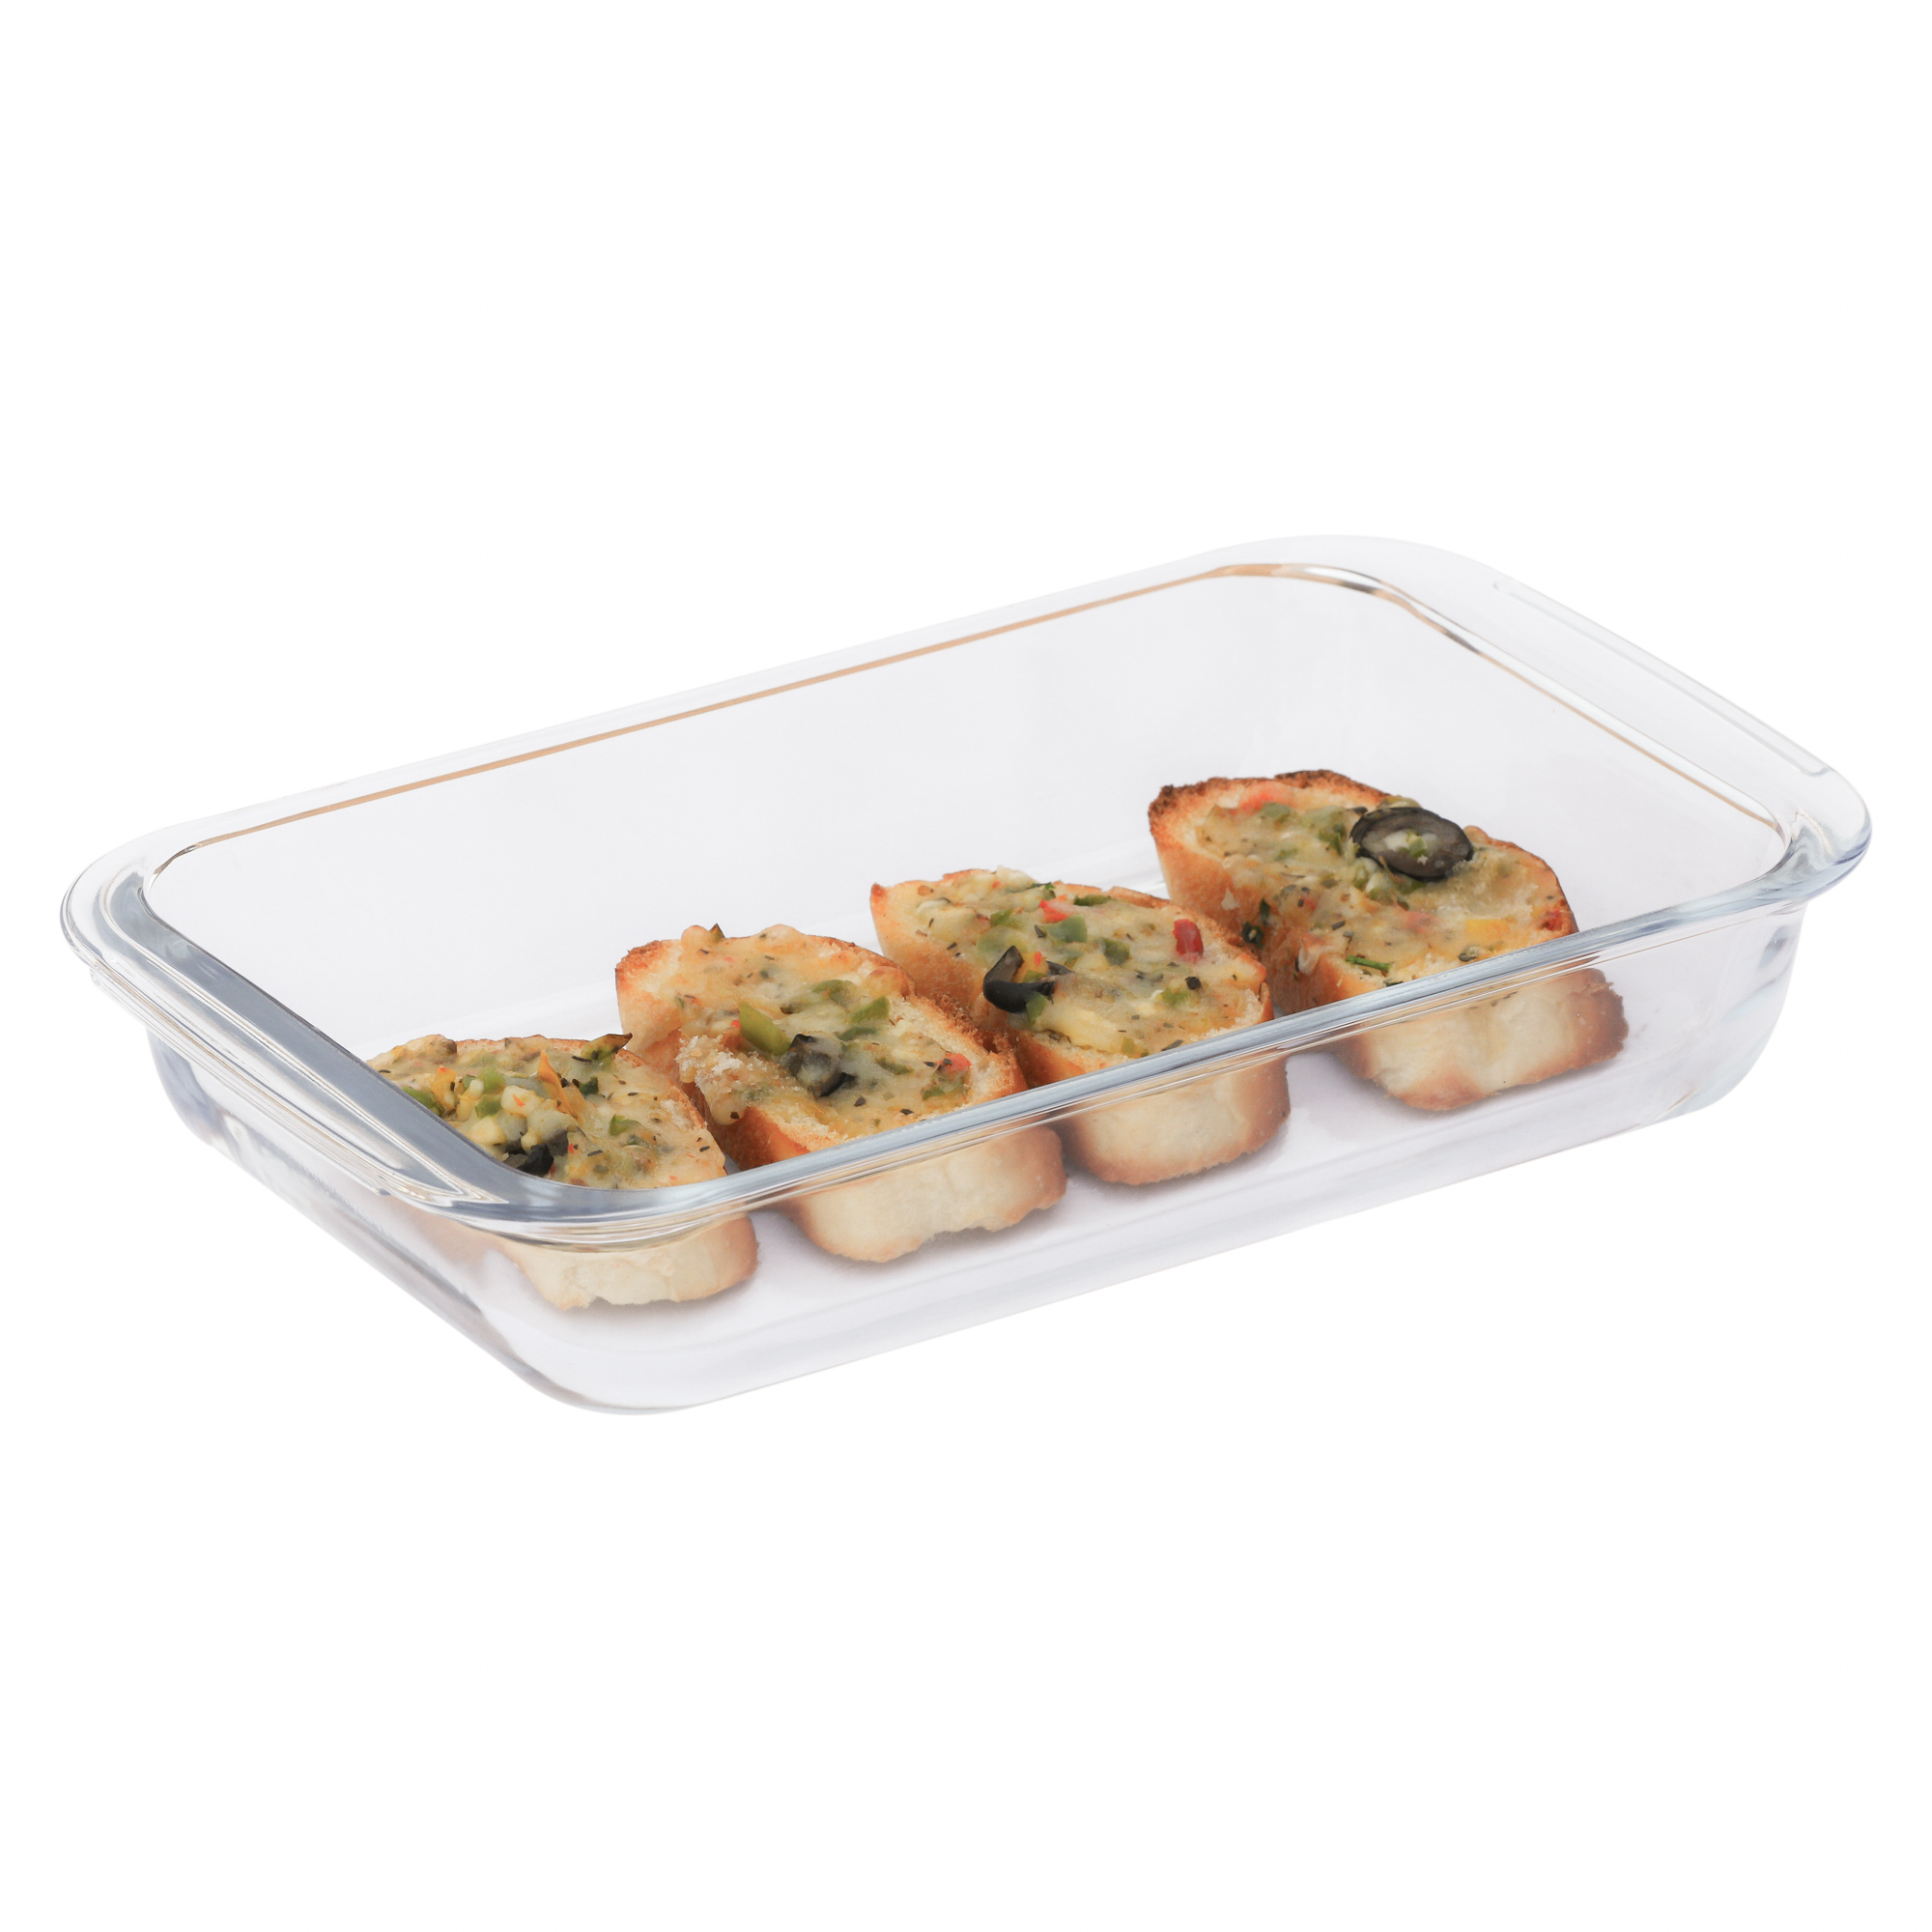 Femora Borosilicate Glass Rectangular Dish-1000ml